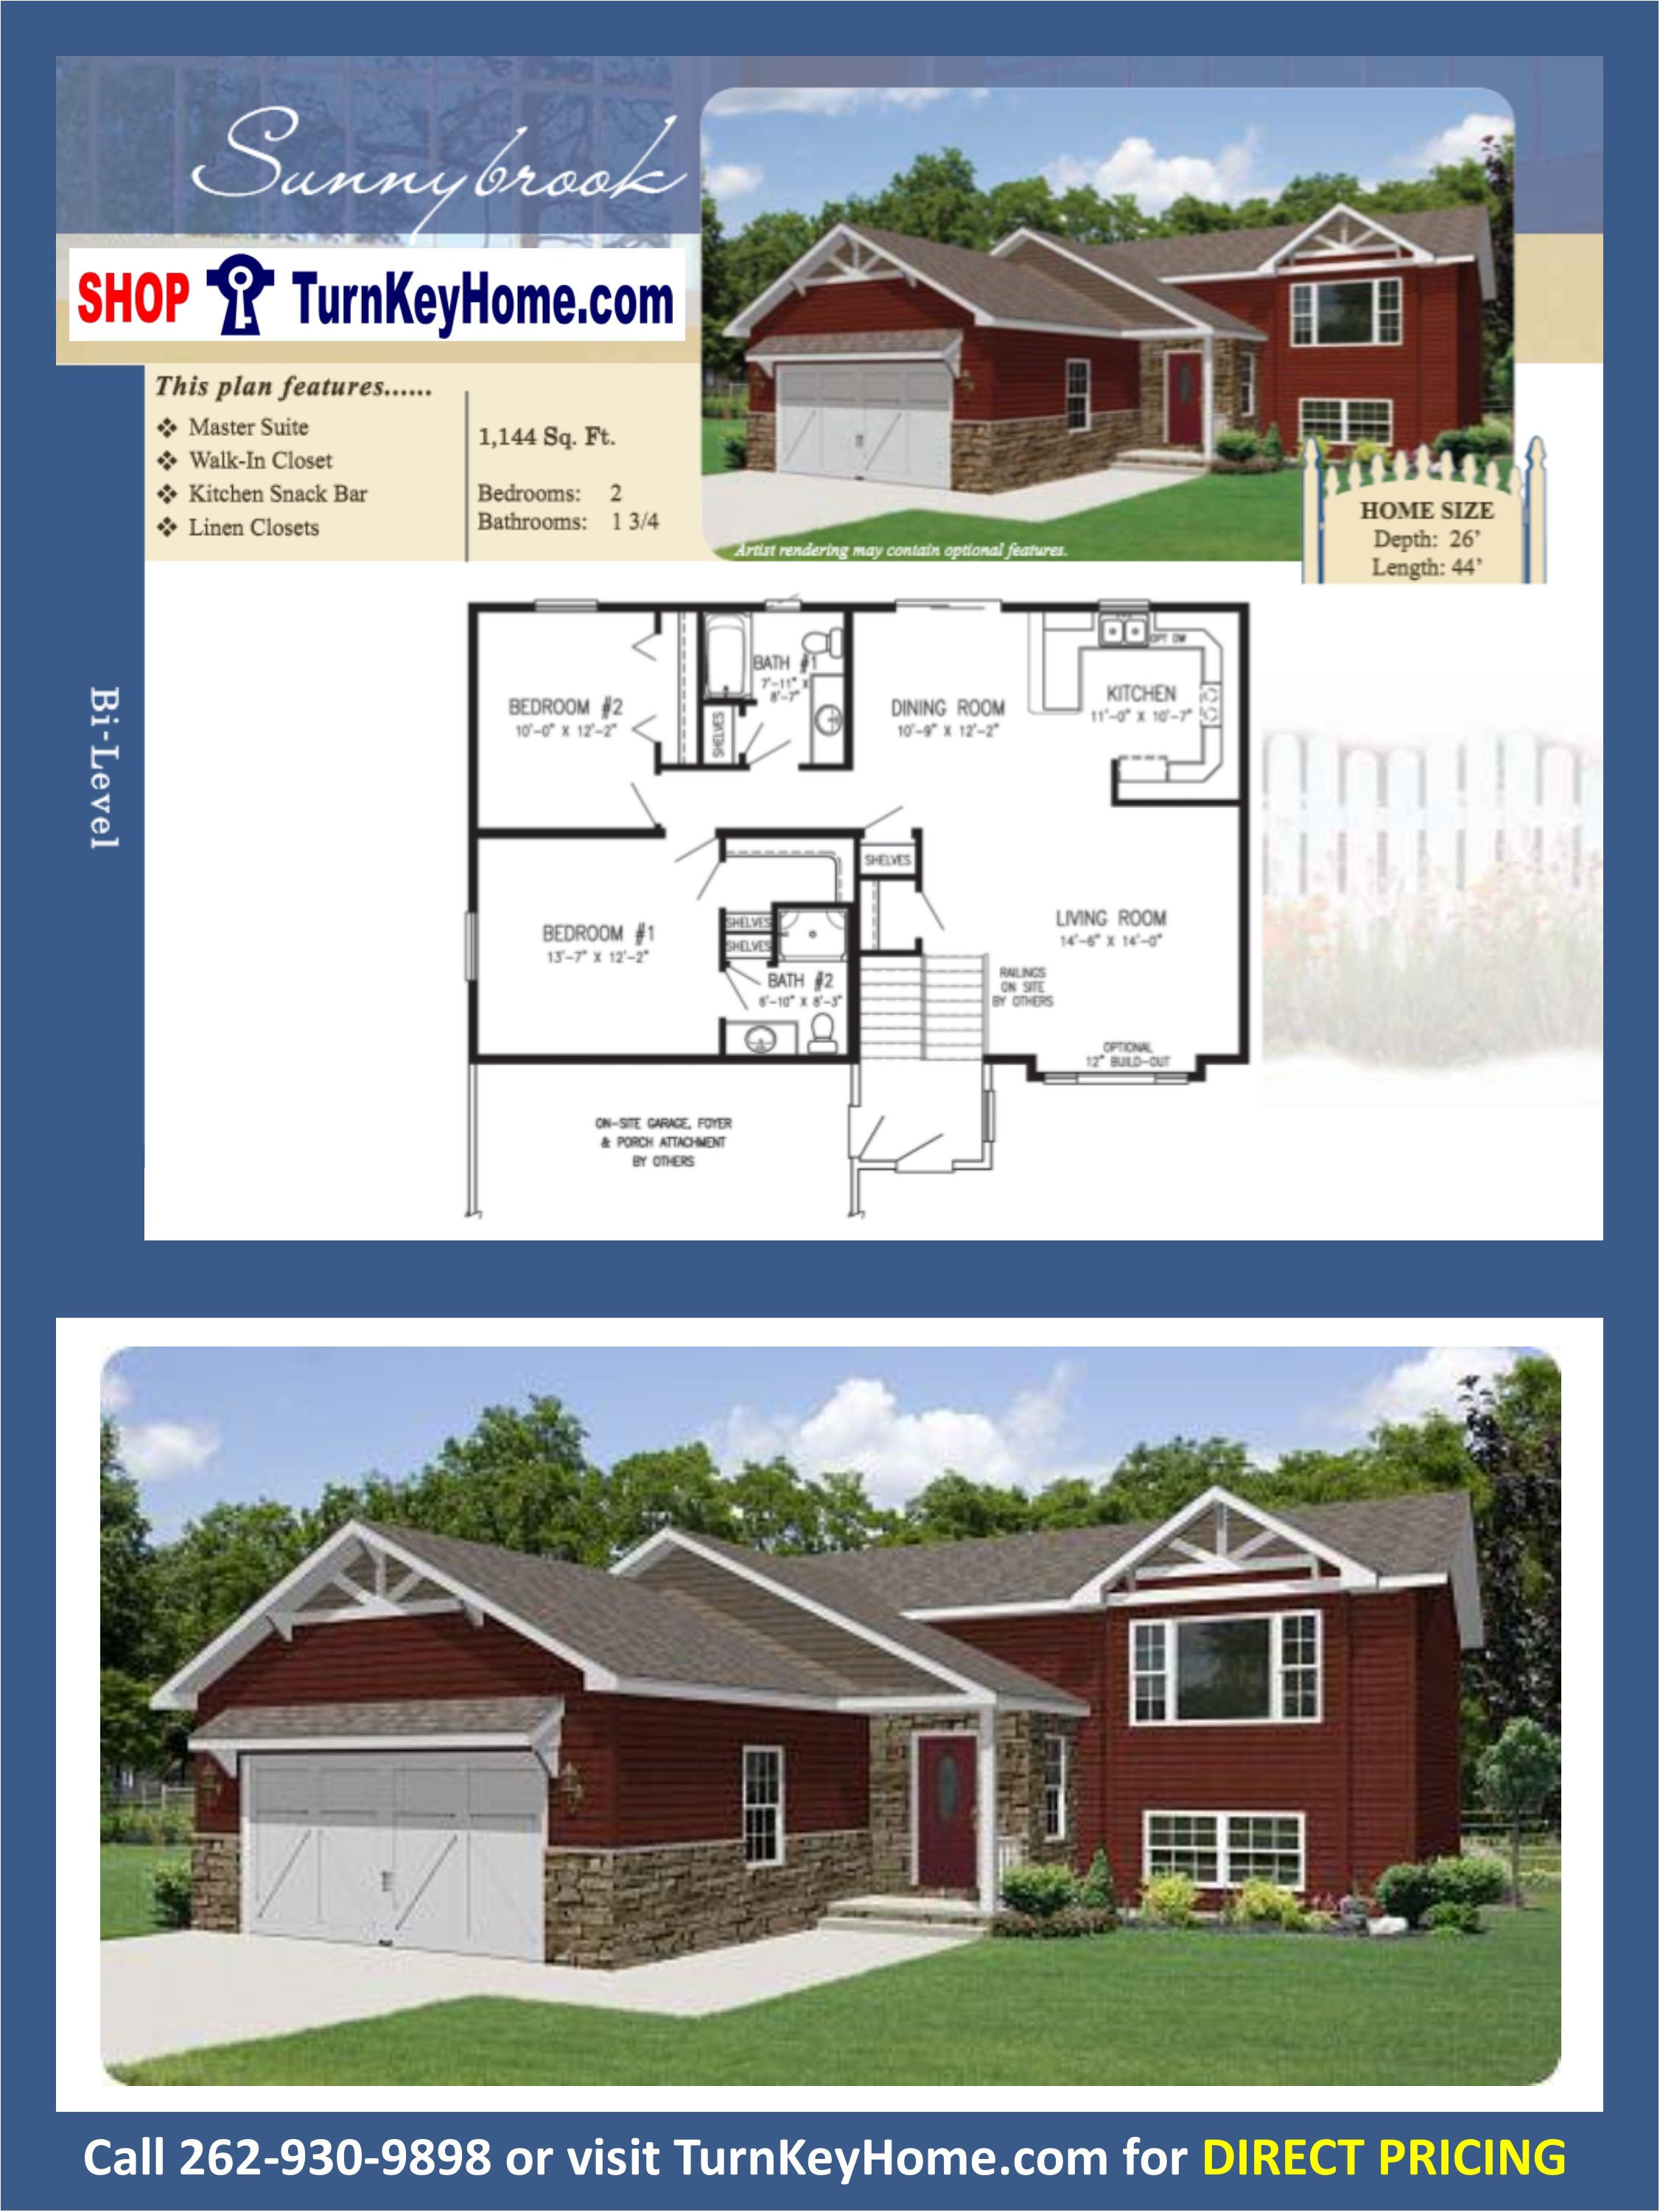 SUNNYBROOK Bi-Level Home 2 Bed 1.75 Bath Plan 1144 SF Priced From ...